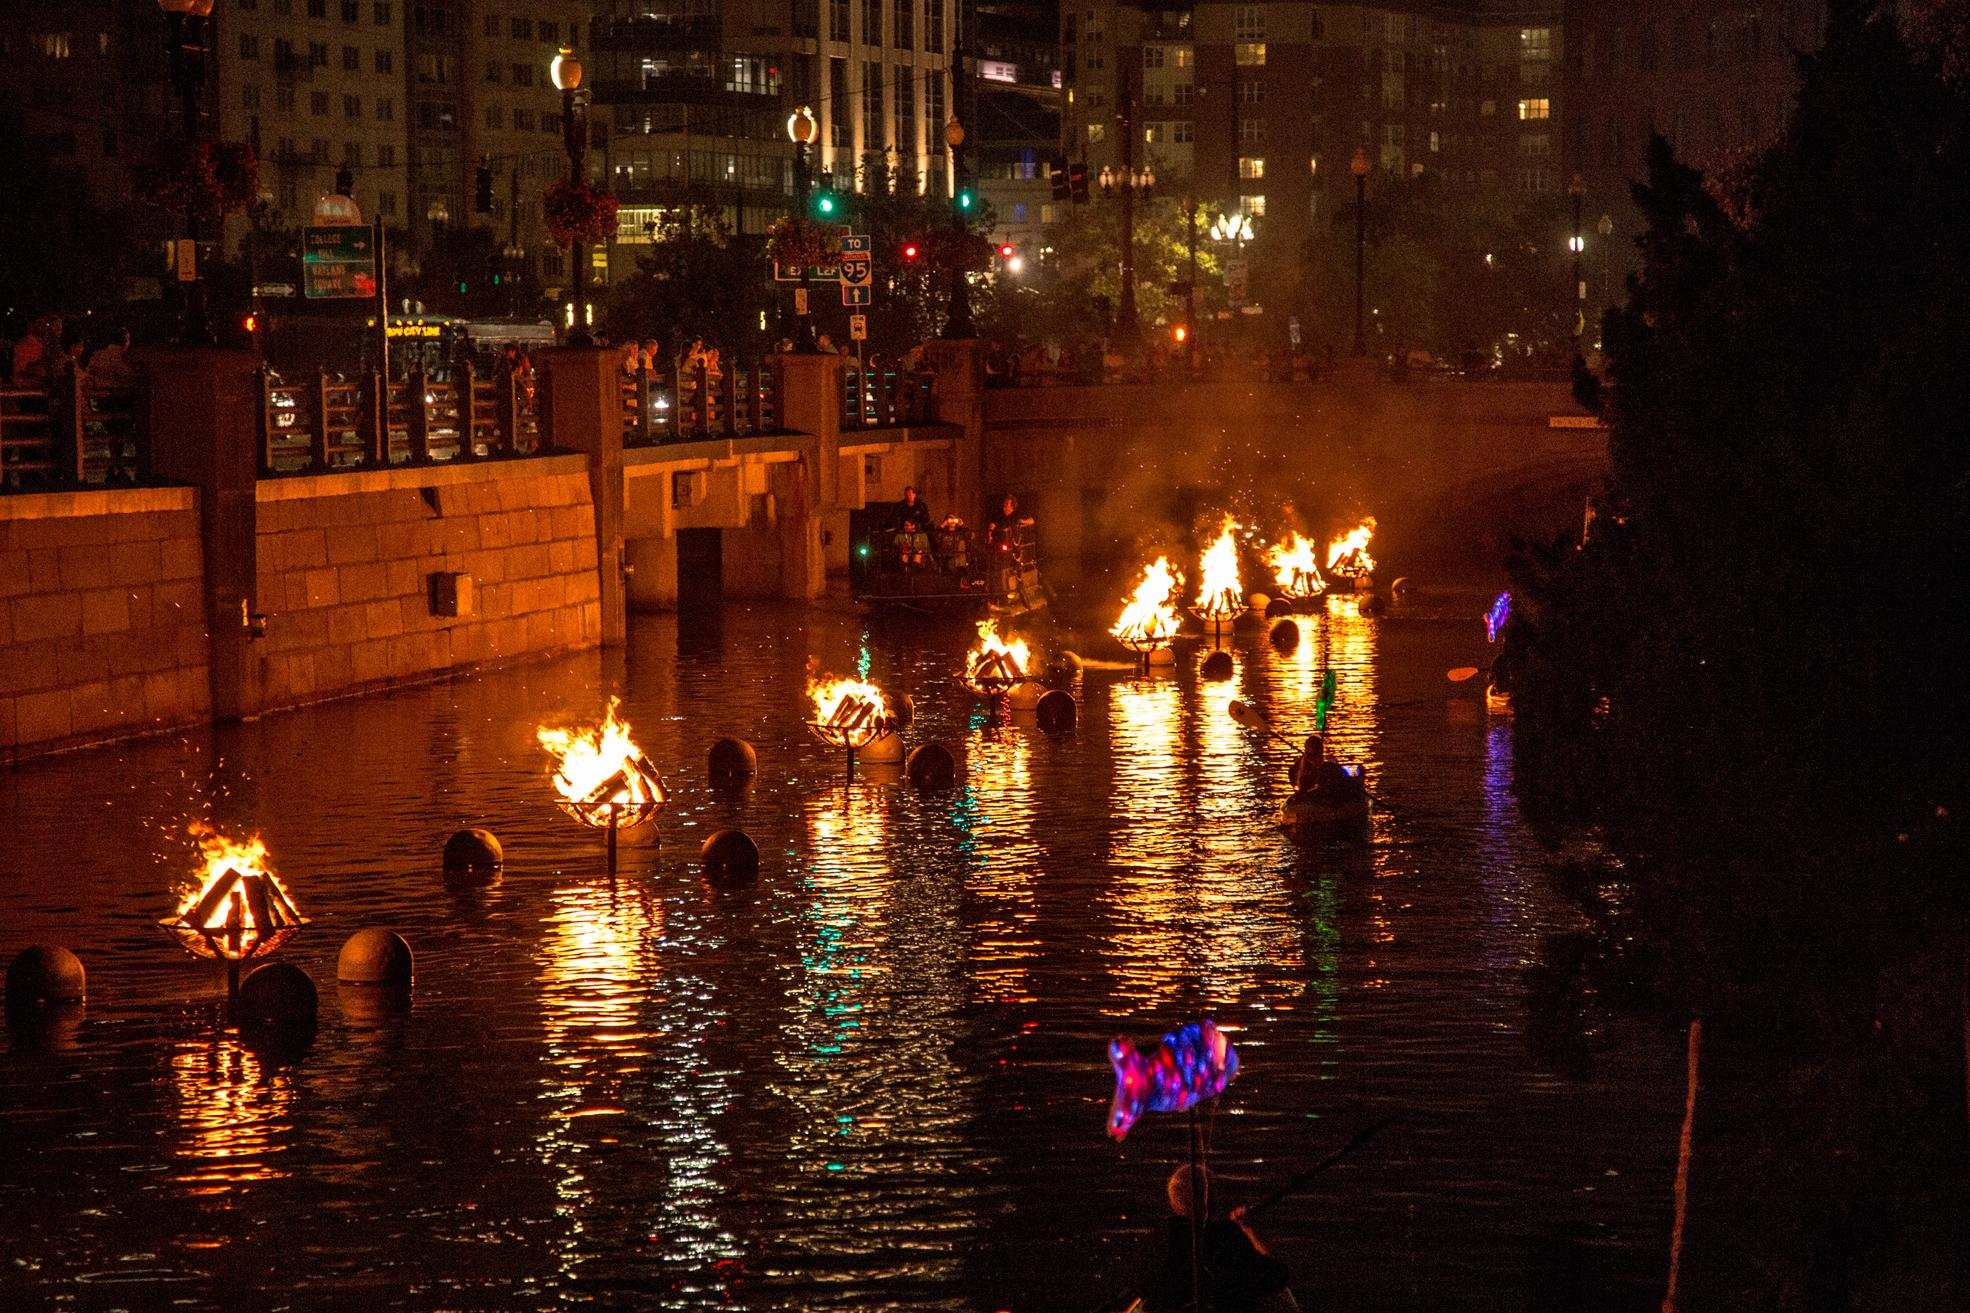 Providence's signature event is WaterFire, an award-winning fire sculpture installation on the three rivers in downtown Providence. Created by local artist Barnaby Evans, WaterFire has become a must-see for visitors. (Image: N.Millard/GoProvidence.com)